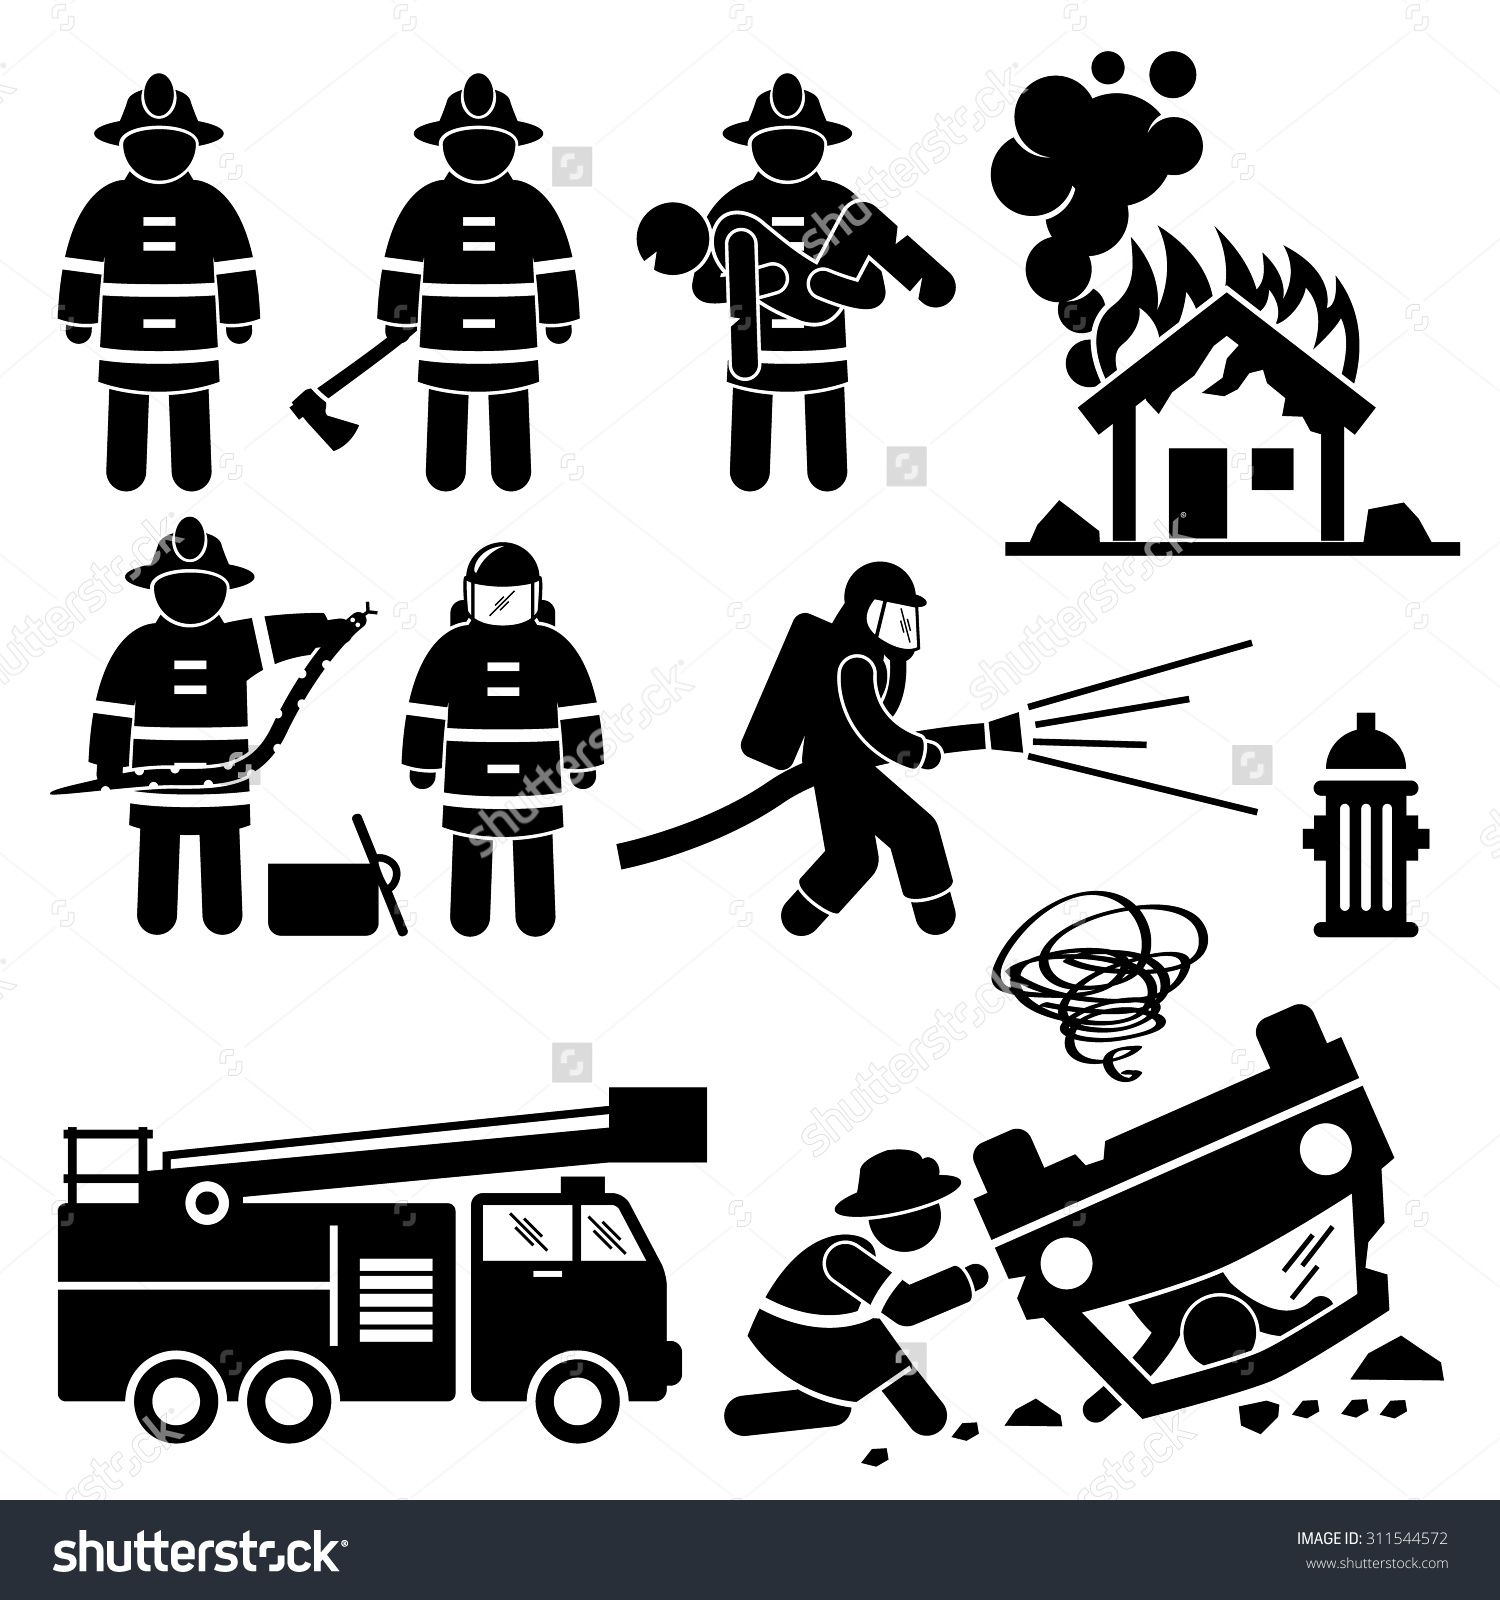 Fireman stick figure pictogram. Firefighter clipart search and rescue